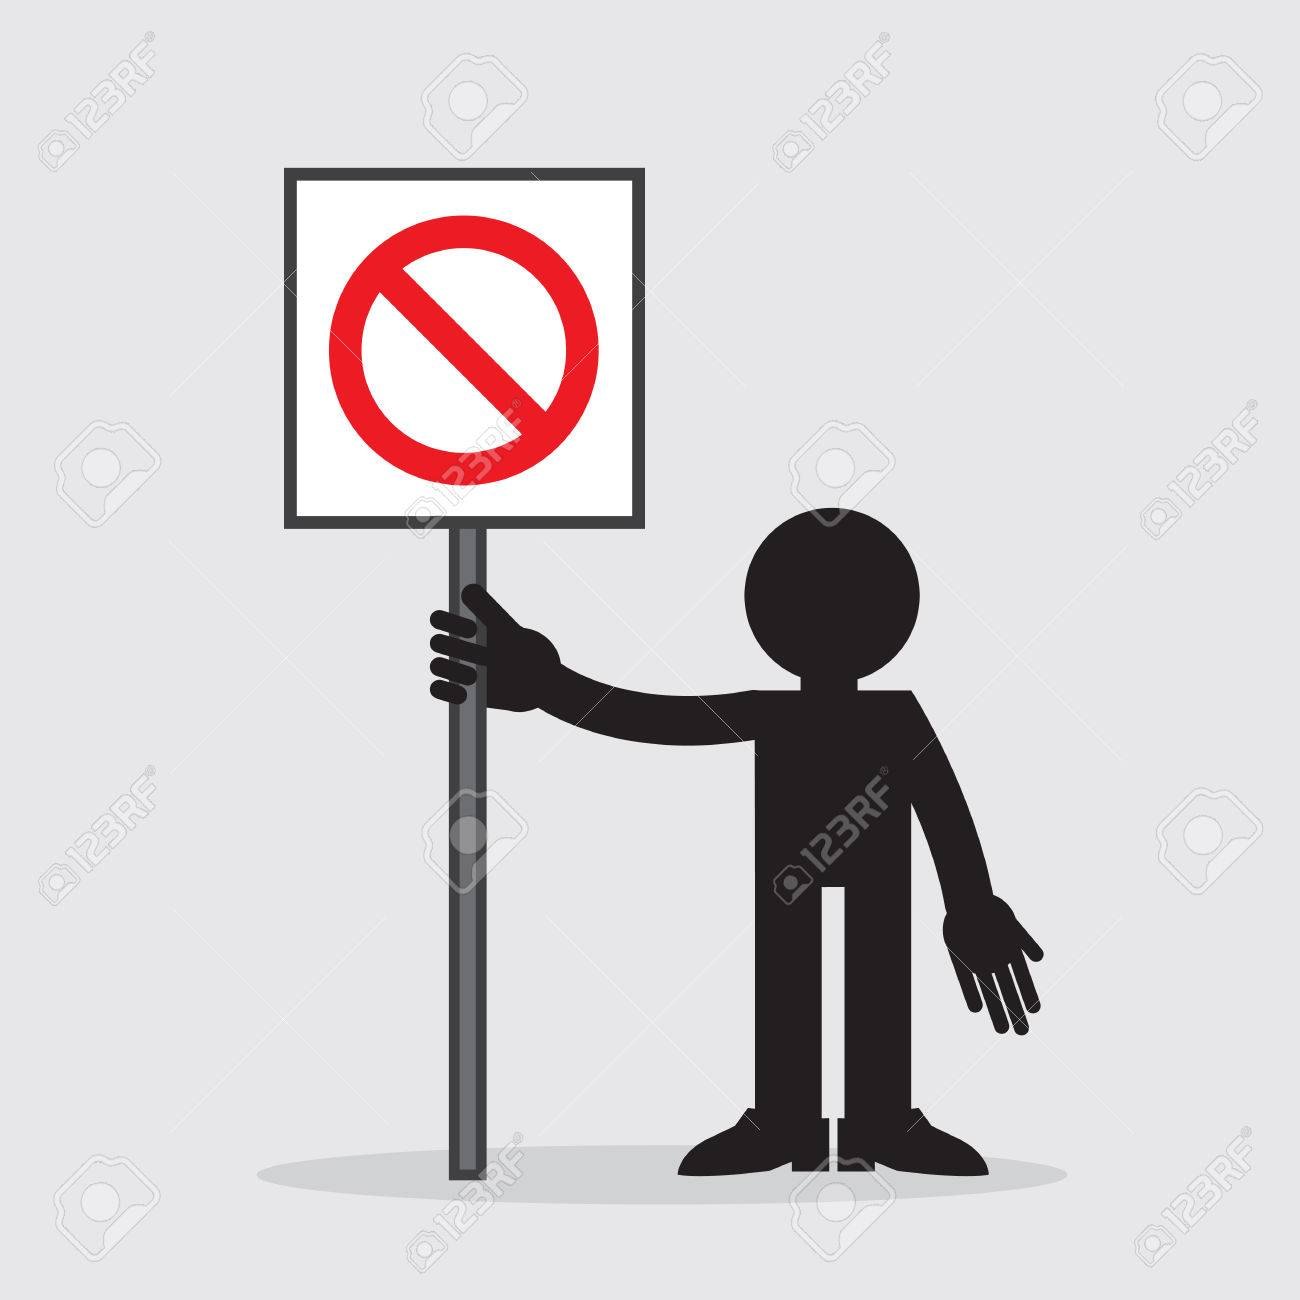 Silhouette figure holding sign with cross out symbol Stock Vector - 23010589